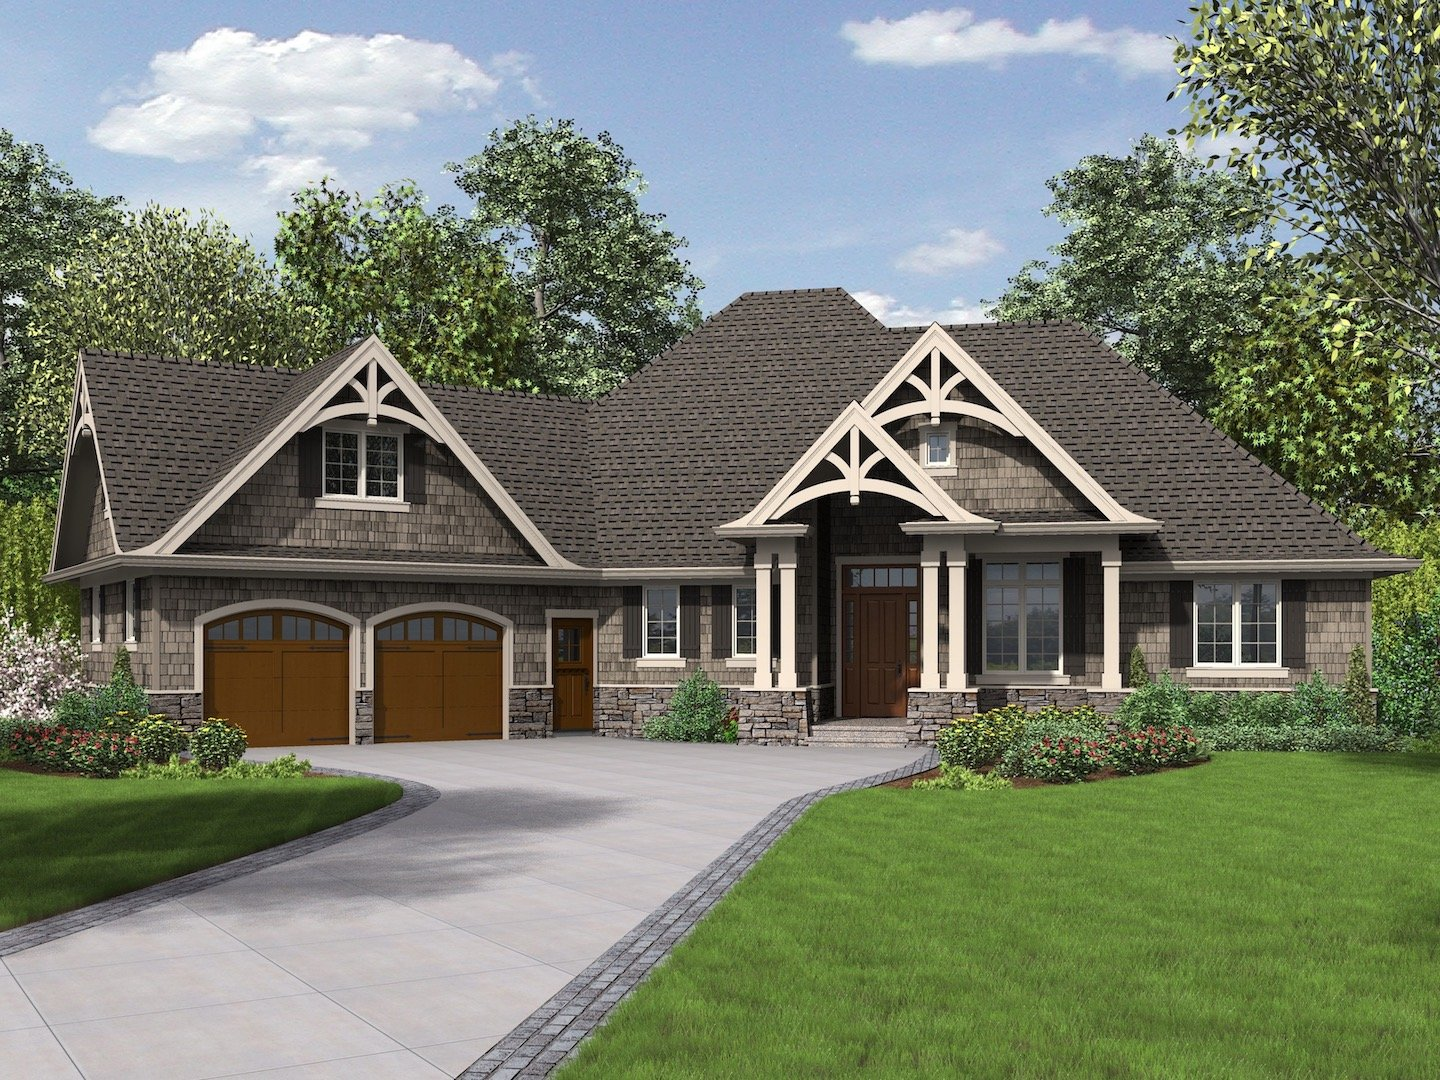 1248 Front Rendering dimg